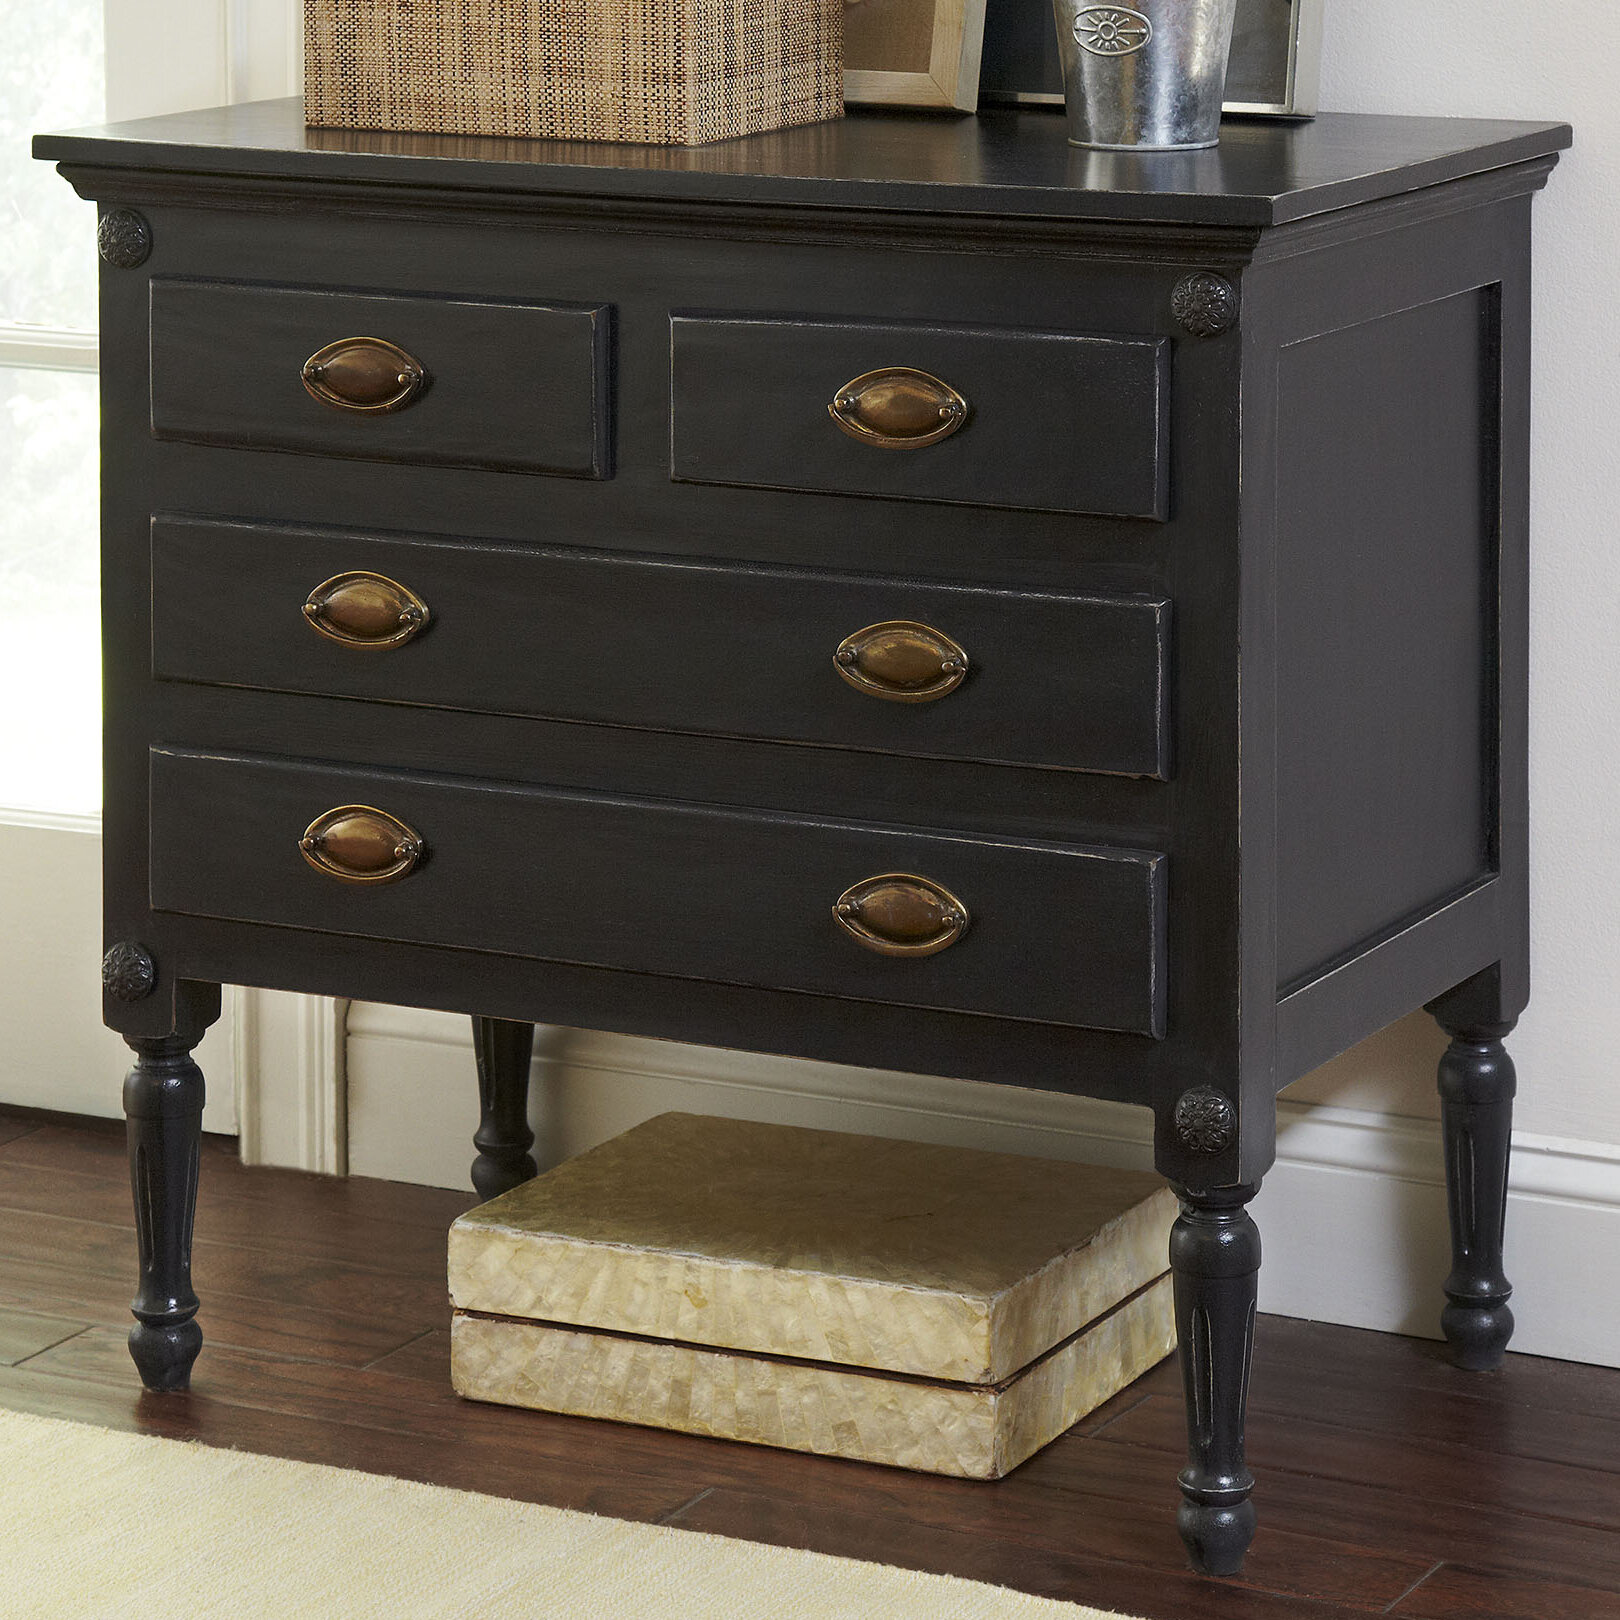 dresser fremont dp kitchen dining amazon com of drawer espresso prepac brown chest drawers rahkzl